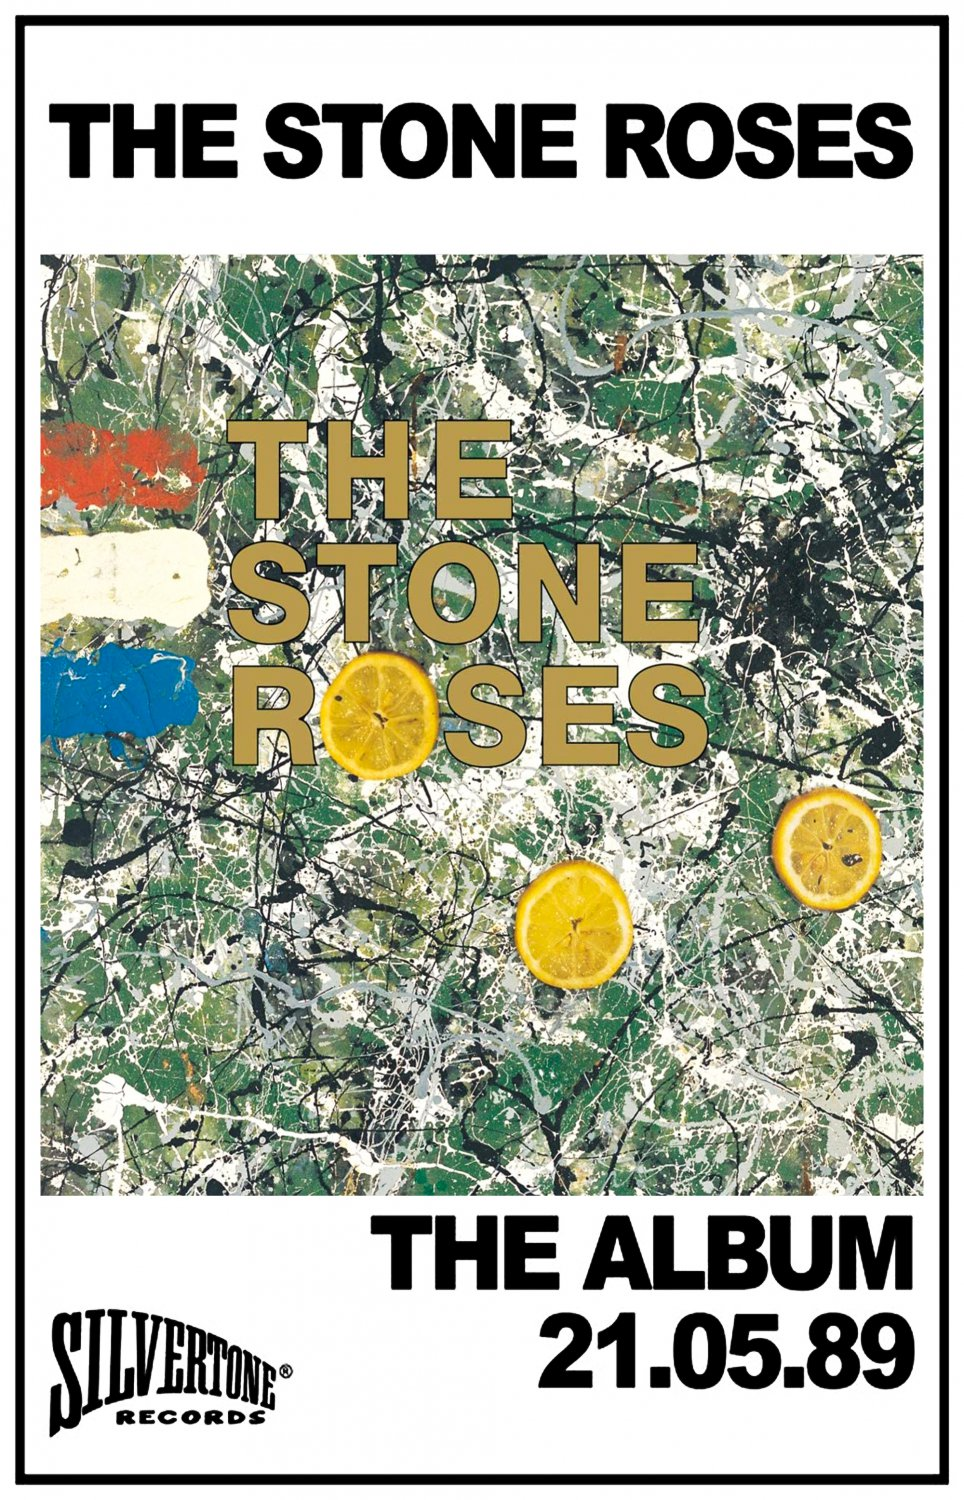 The Stone Roses The Album Cover  18x28 inches Poster Print